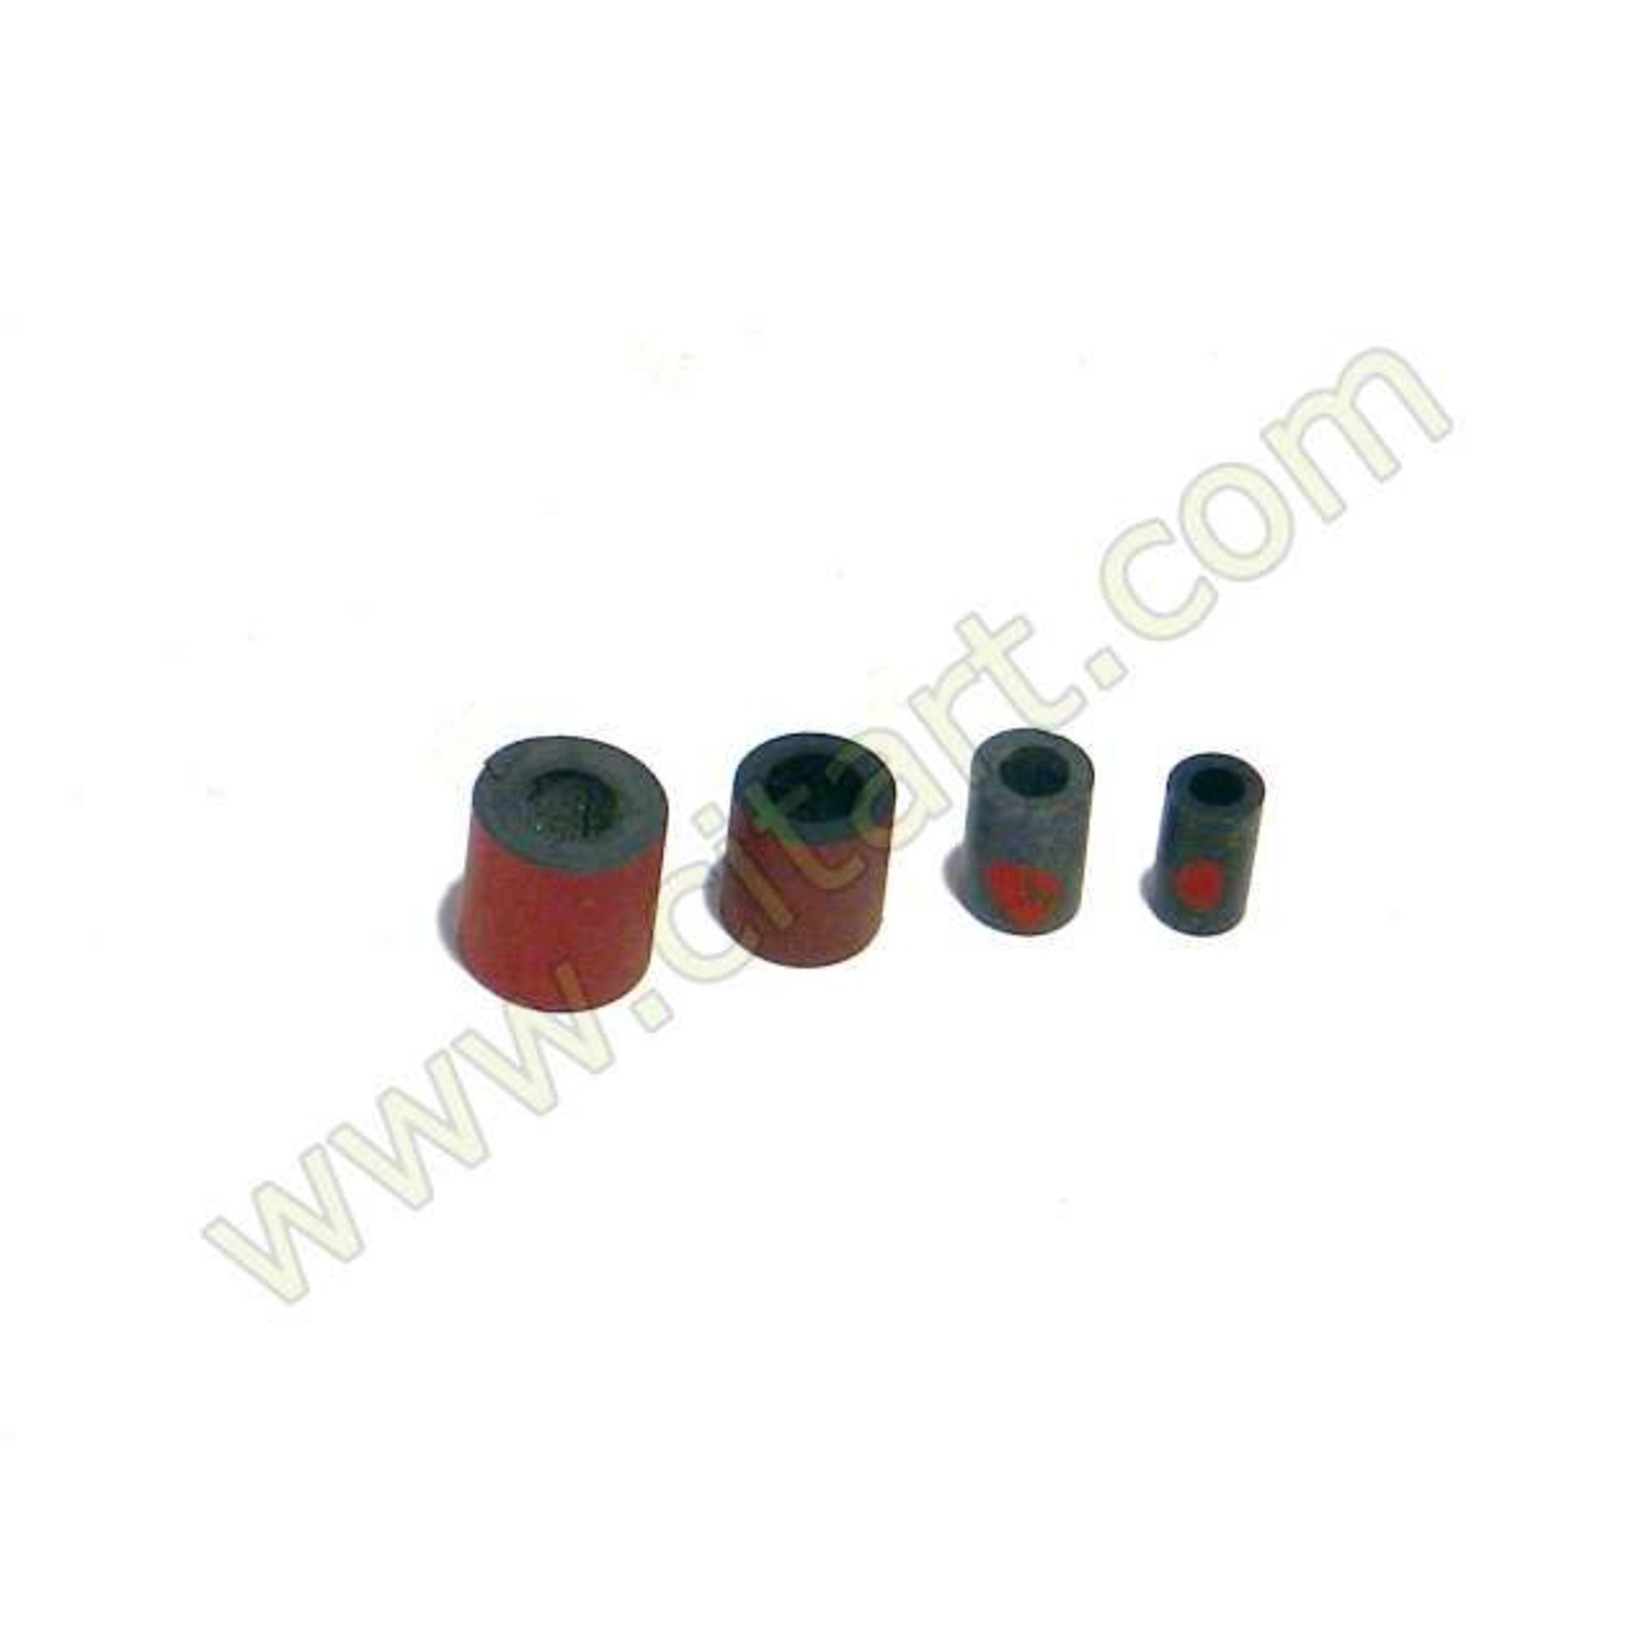 Rubber joint hydraulic pipe LHS 6,35mm Nr Org: 21590009